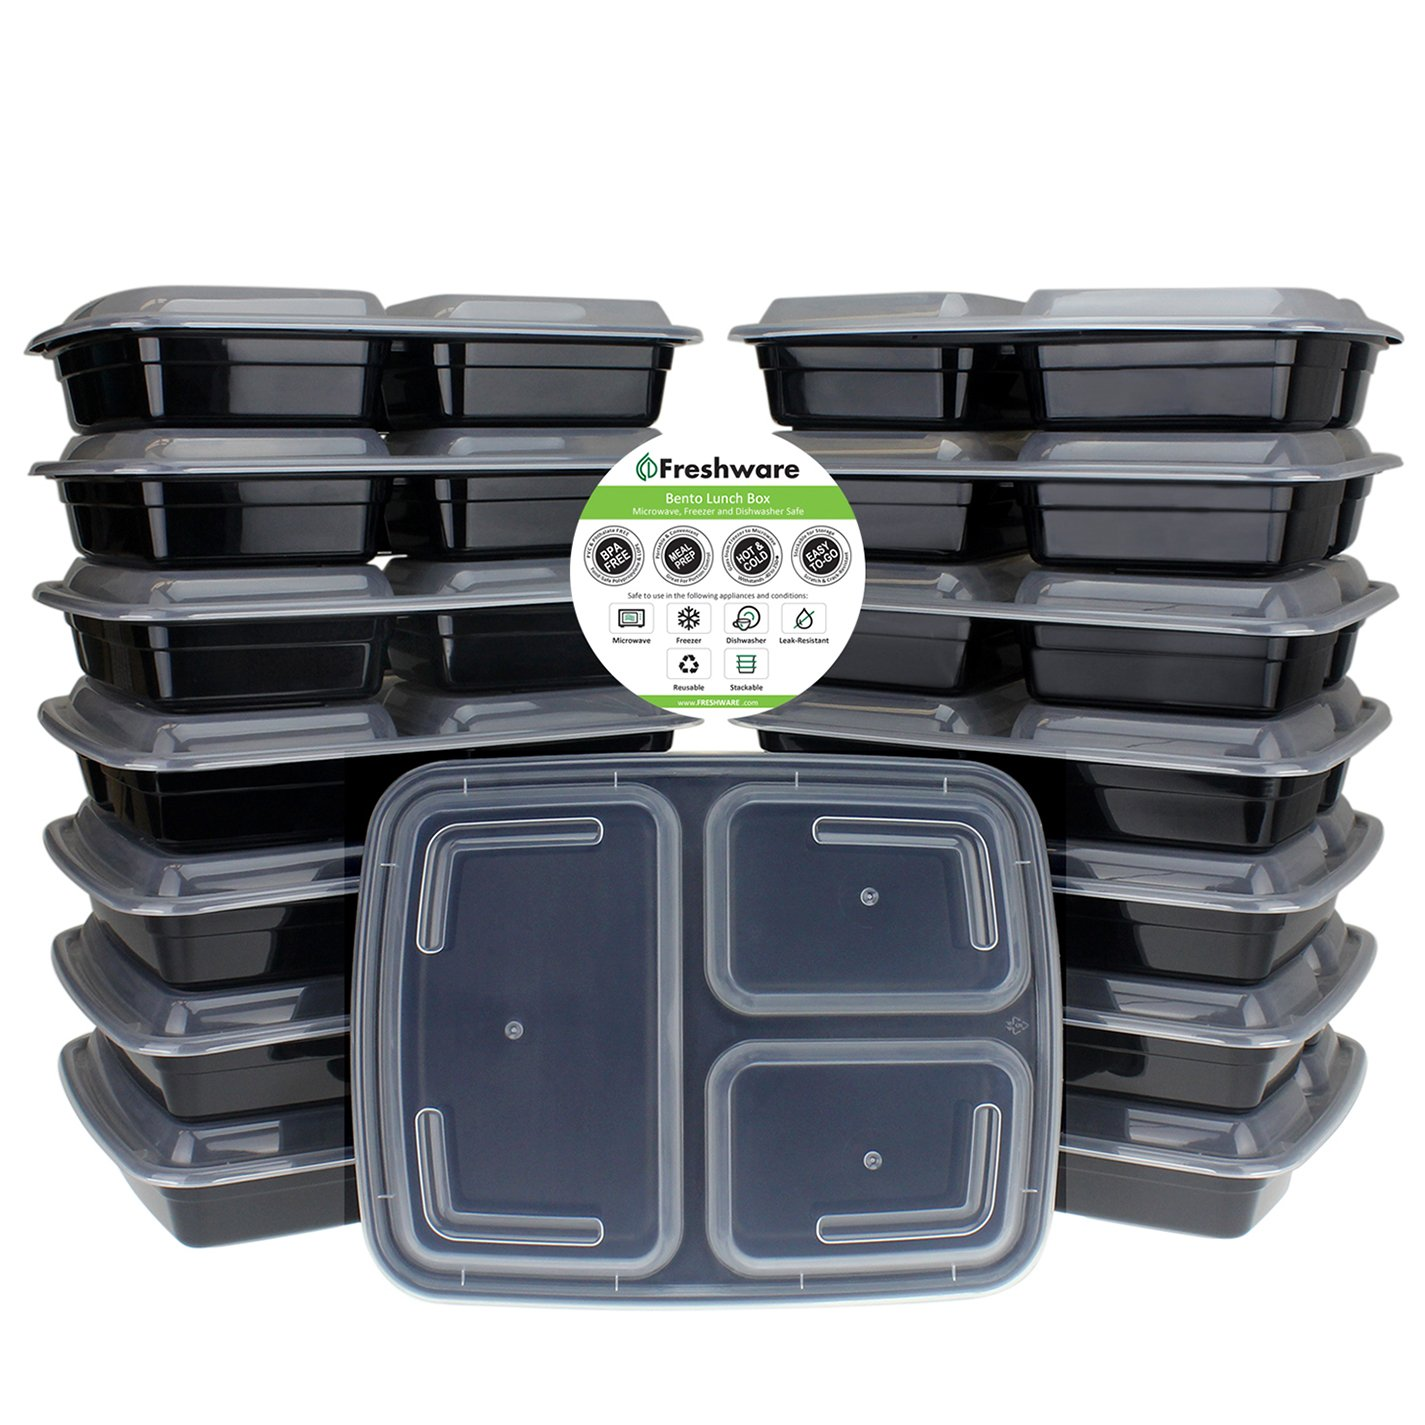 Freshware Meal Prep Containers [21 Pack] 3 Compartment with Lids, Food Storage Containers, Bento Box | BPA Free | Stackable | Microwave/Dishwasher/Freezer Safe, Portion Control, 21 Day Fix (32 oz) YH-3X21A